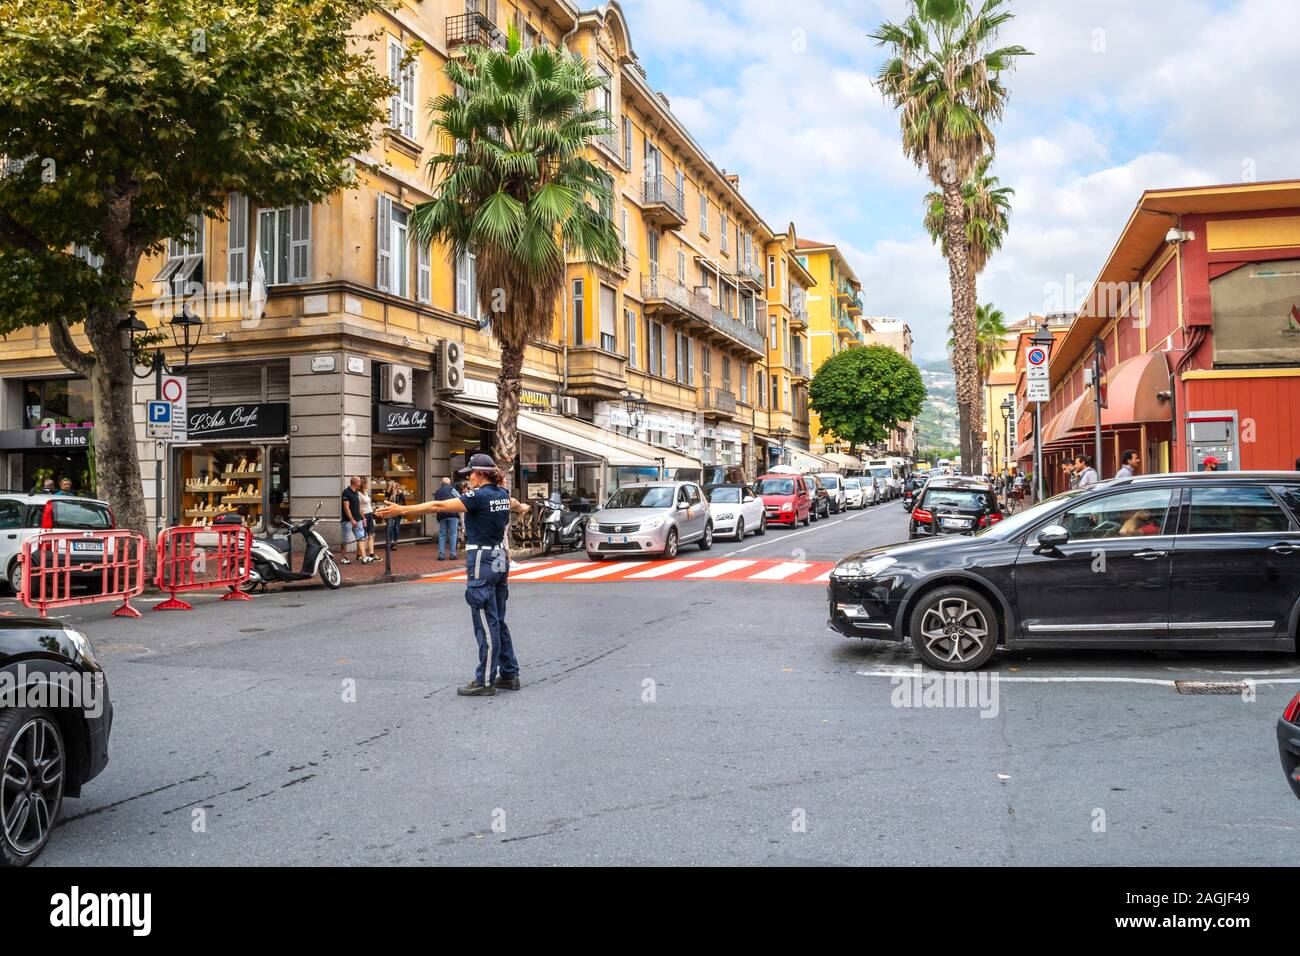 A female policewoman directs traffic at a red and white crosswalk in the urban center of Ventimiglia, on the Italian Riviera. Stock Photo